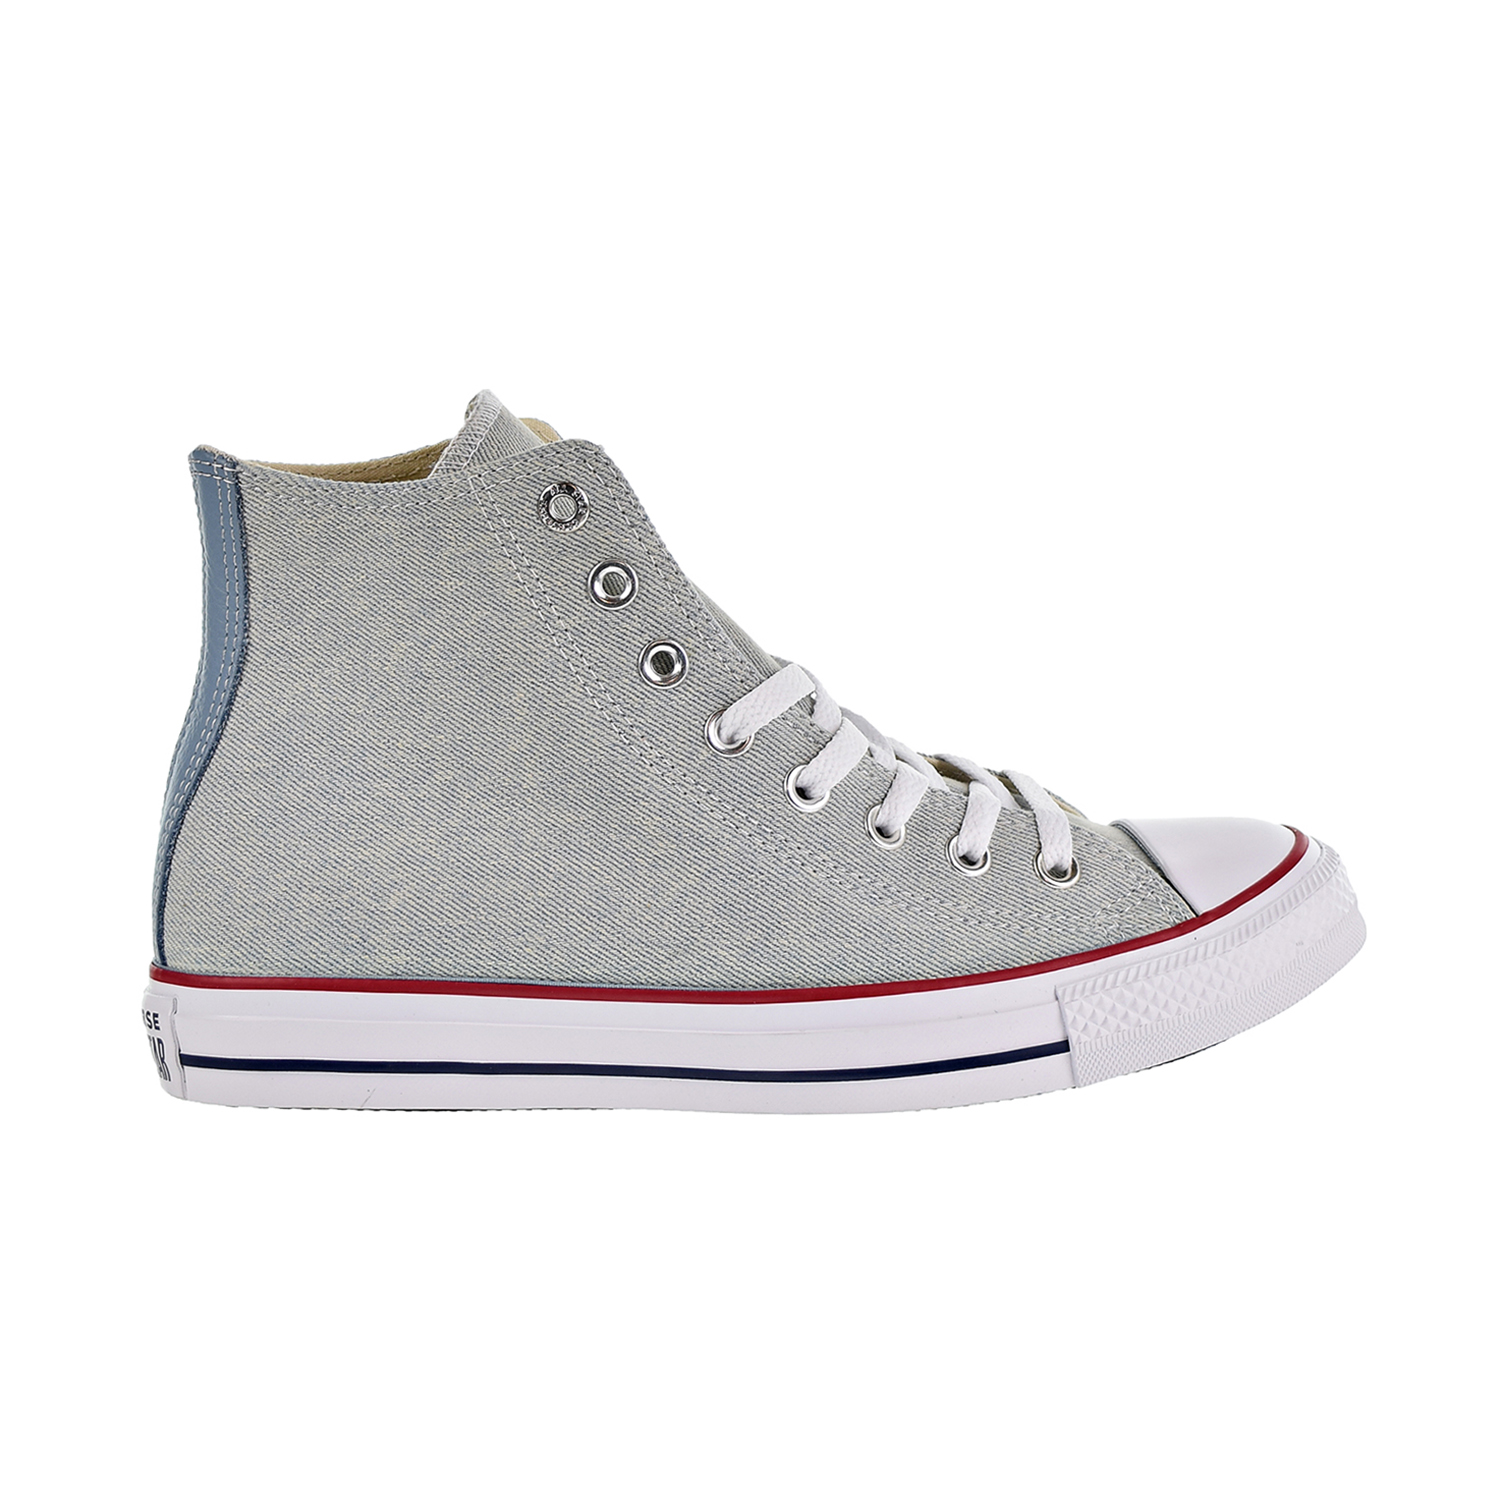 55677602c4ca Details about Converse Chuck Taylor All Star Hi Unisex Shoes Light  Blue White Brown 161491c